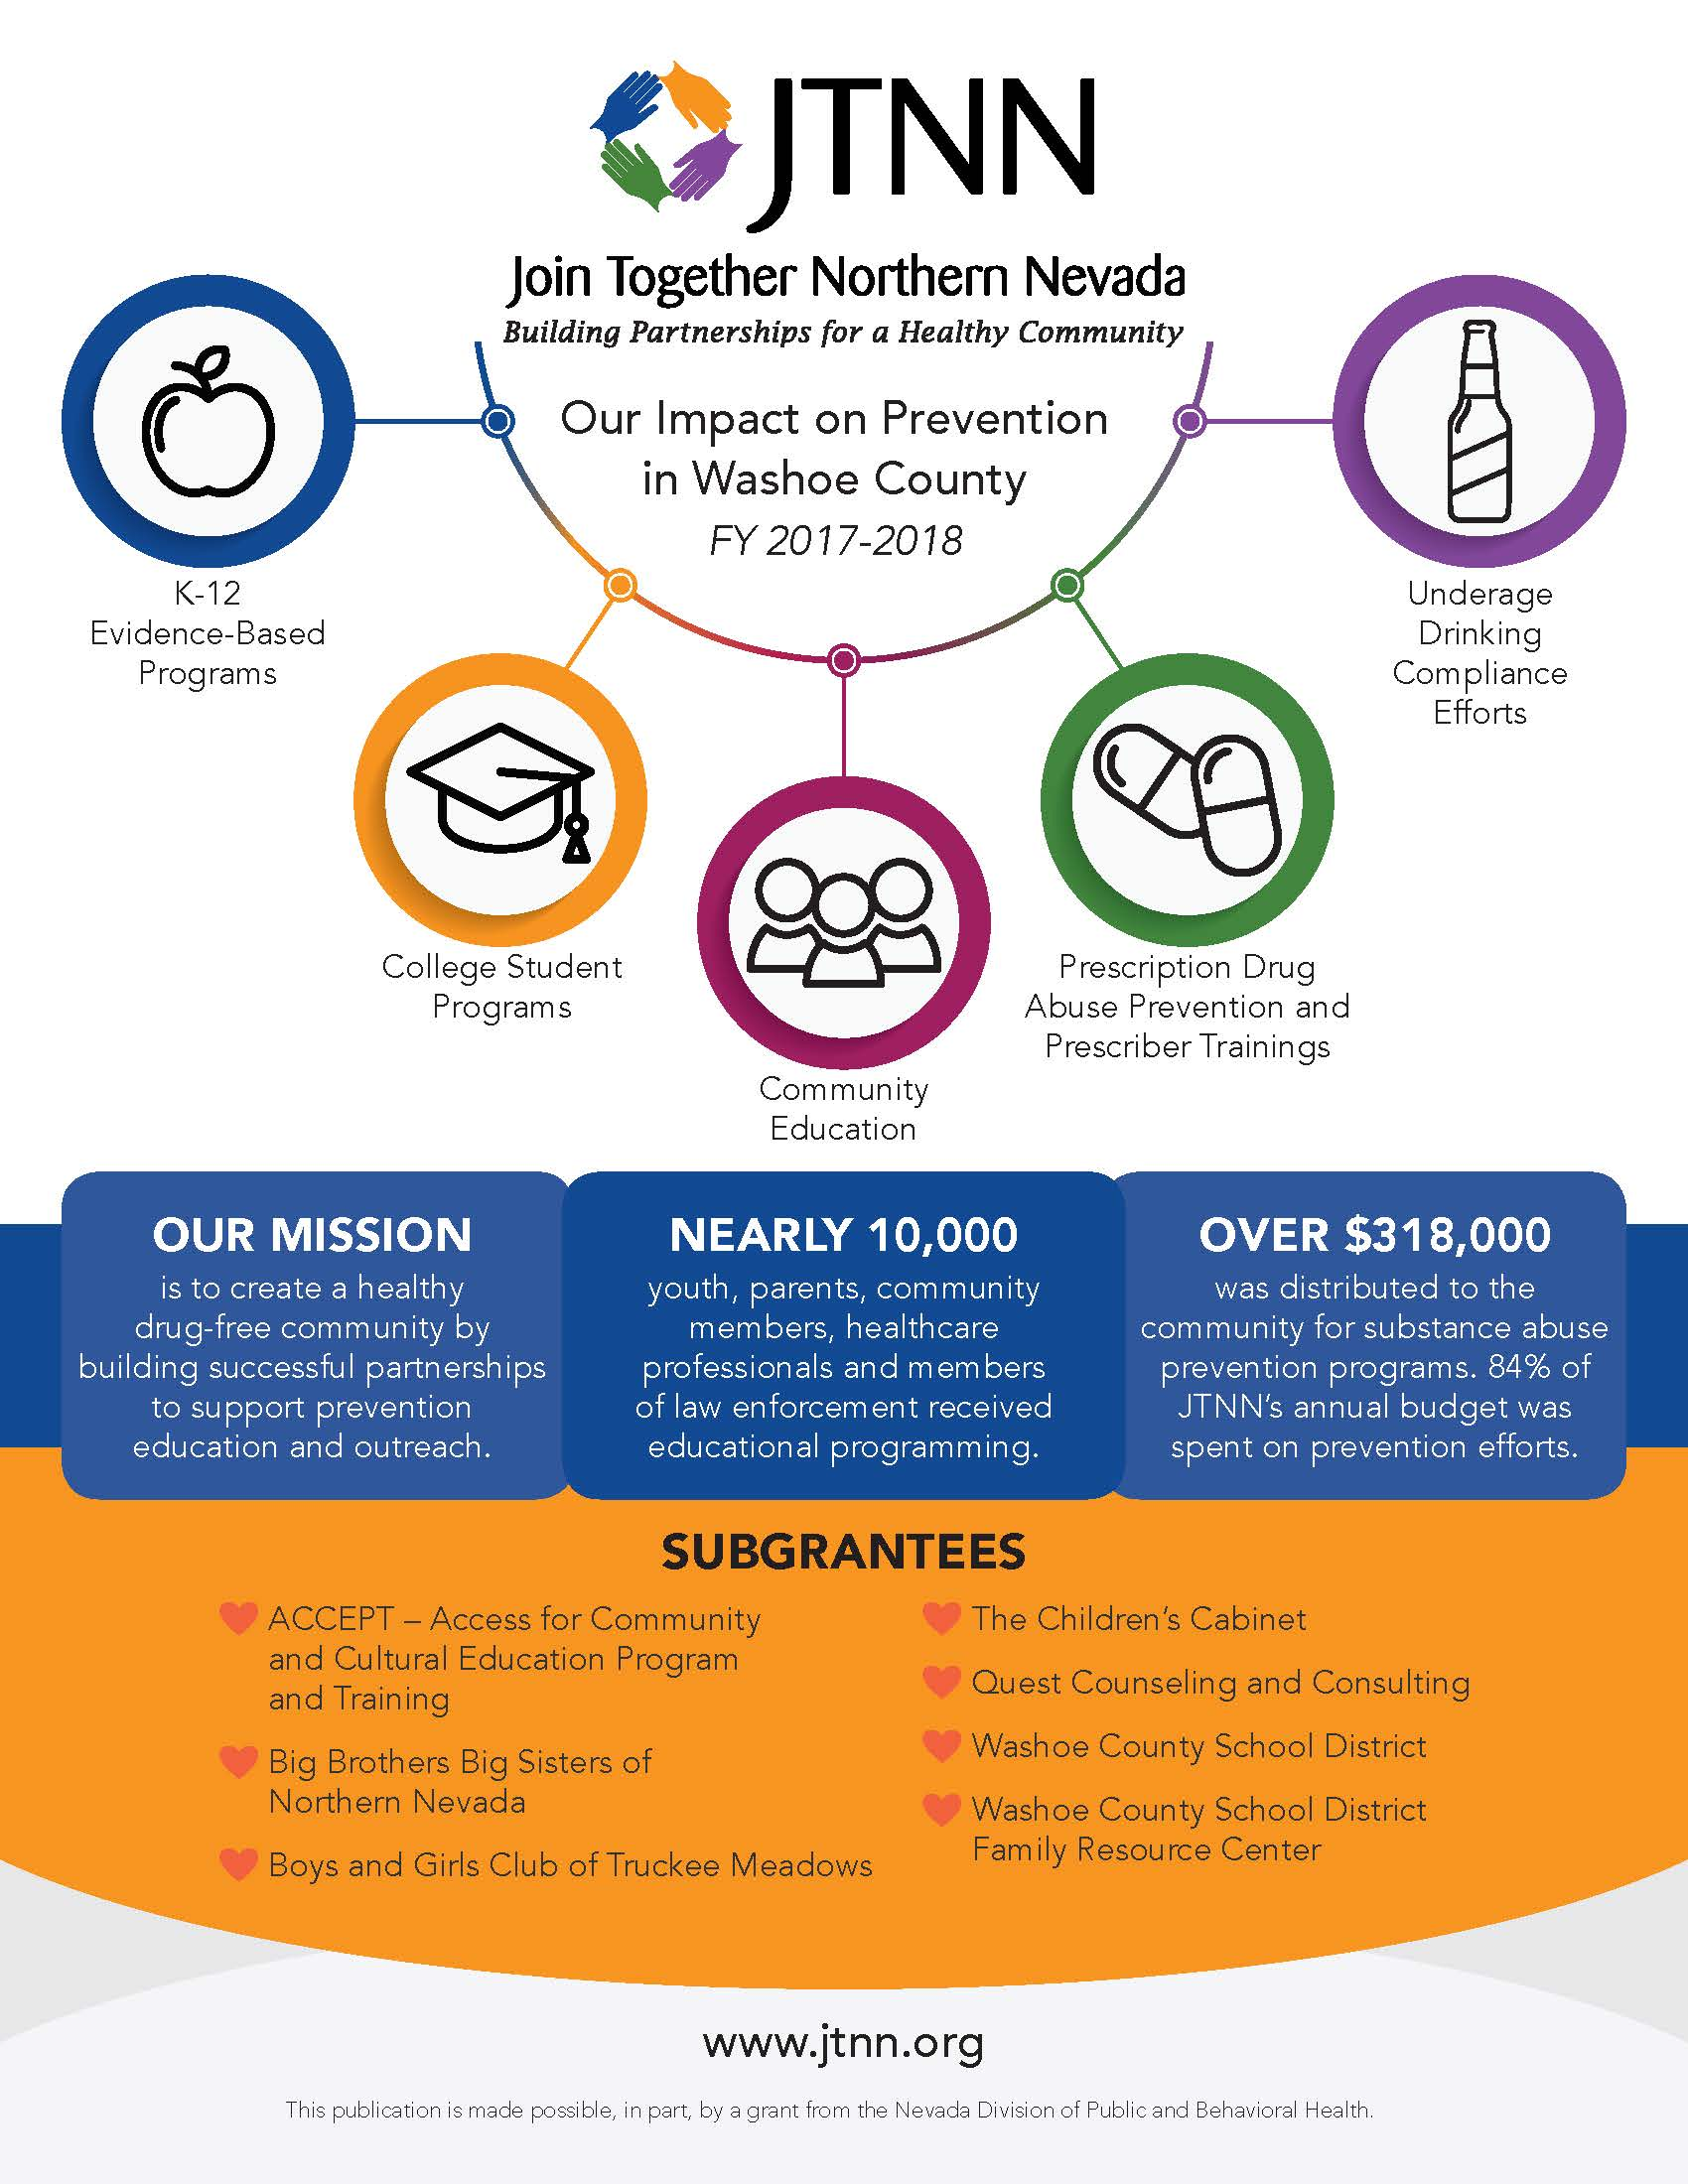 JTNN 17-18 Annual Report Infographic